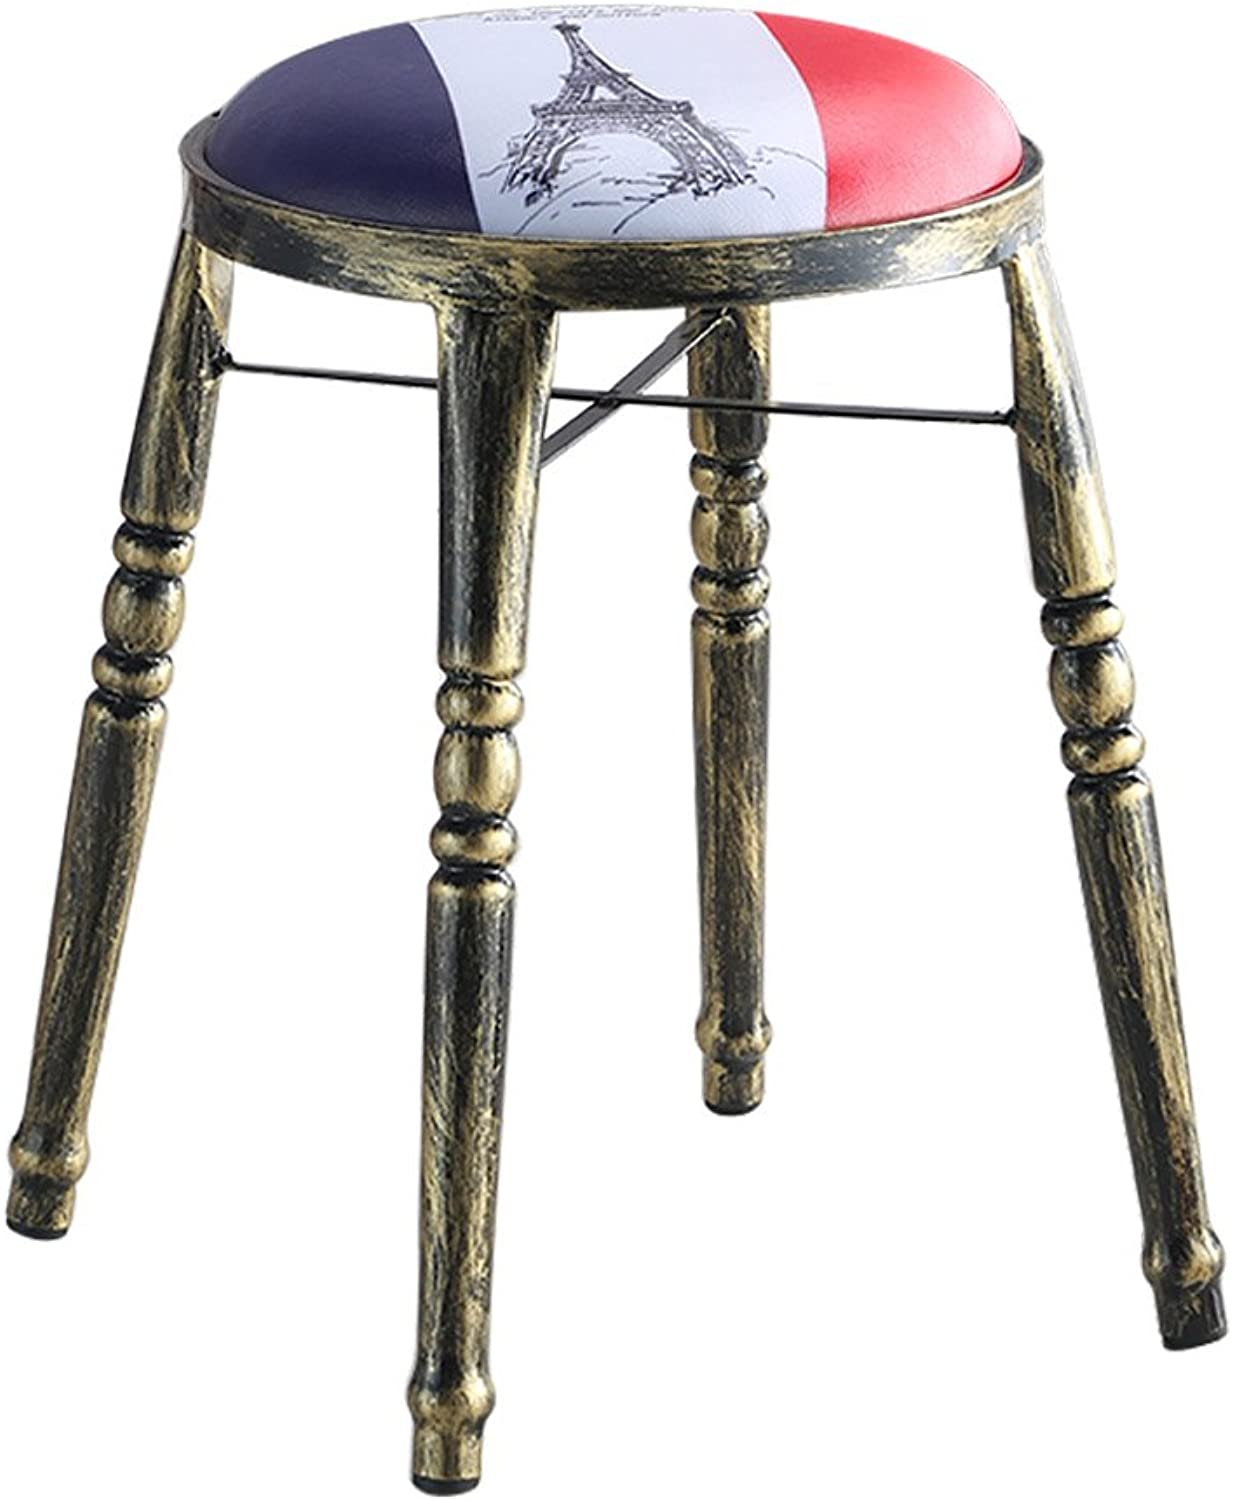 Nationwel@ Round Table Stools with Padded Soft Cushion-Vintage Industrial Style-Copper (color   7, Size   H48cm)